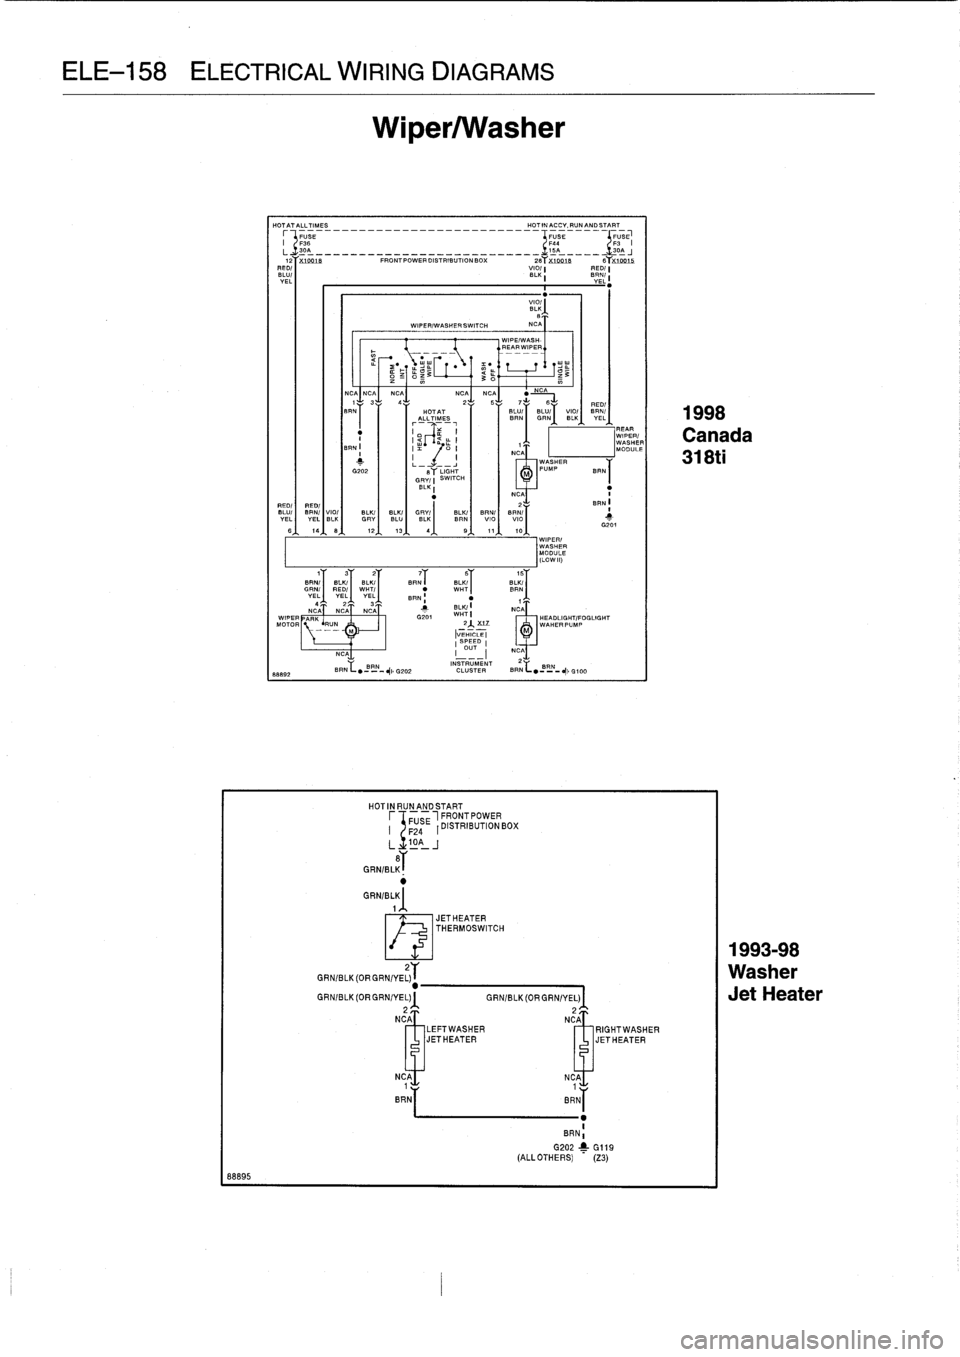 w960_2800 640 bmw m3 1992 e36 workshop manual BMW Stereo Wiring Diagram at gsmportal.co